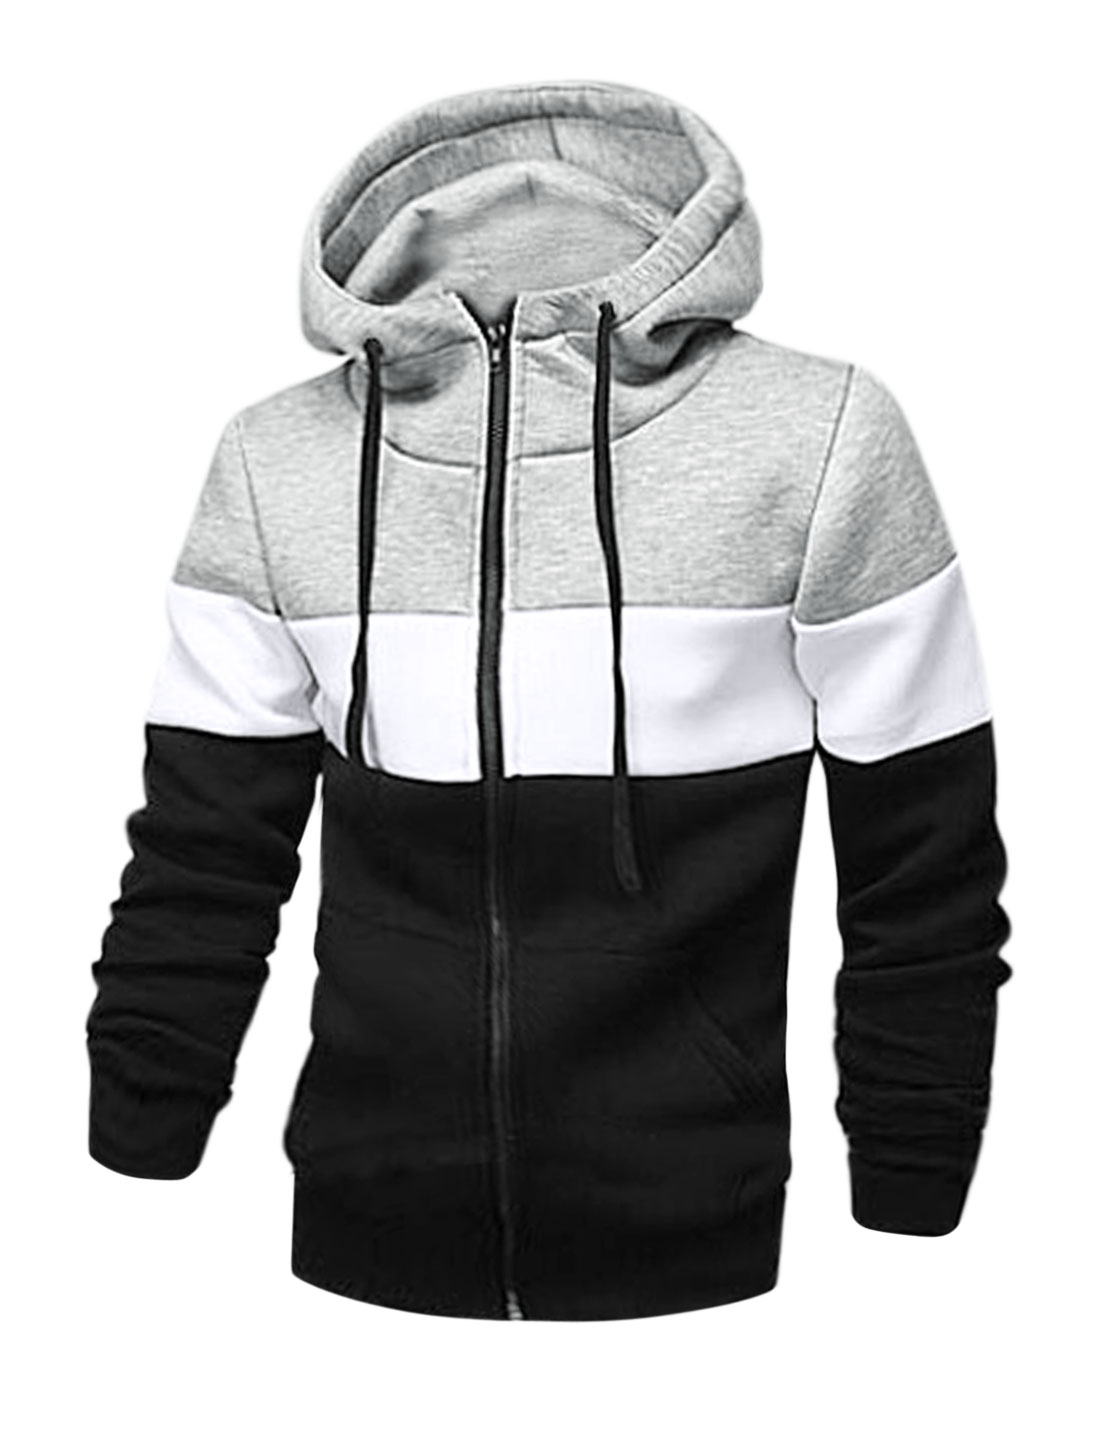 Men Drawstring Color Block Kangaroo Pockets Hooded Sweatshirt Gray M